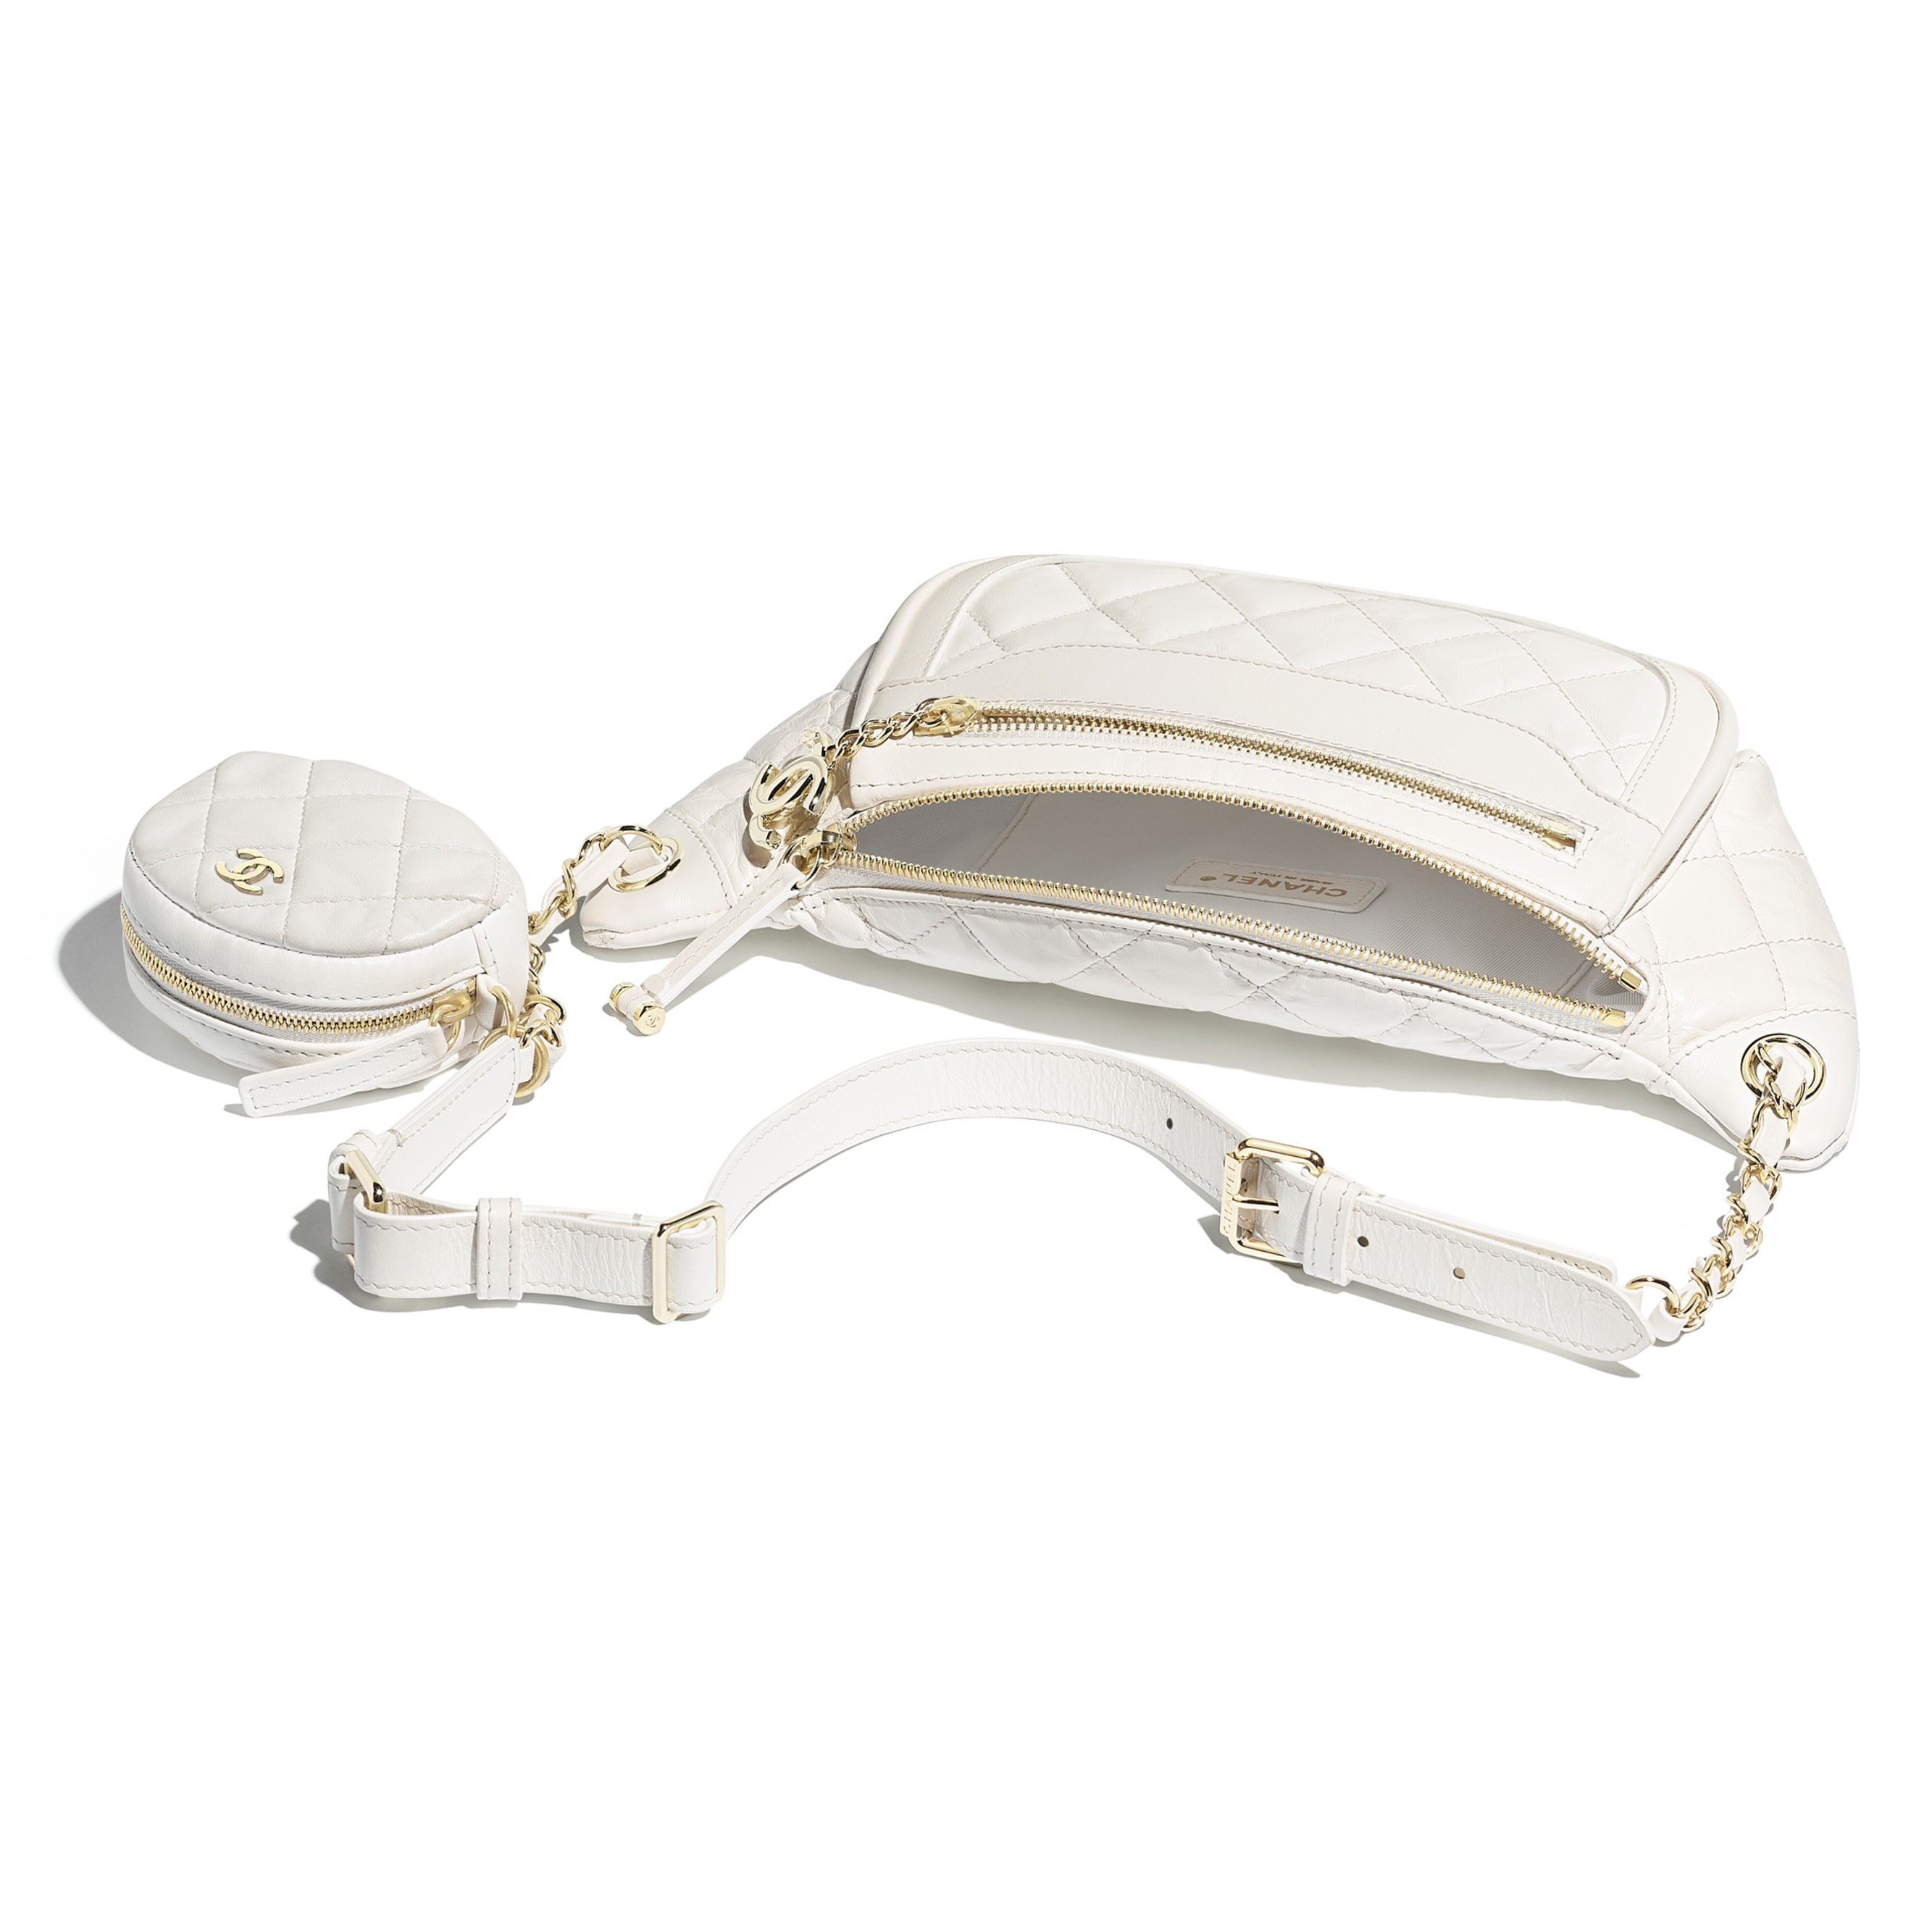 Waist Bag & Coin Purse - White - Aged Calfskin & Gold-Tone Metal - Other view - see standard sized version